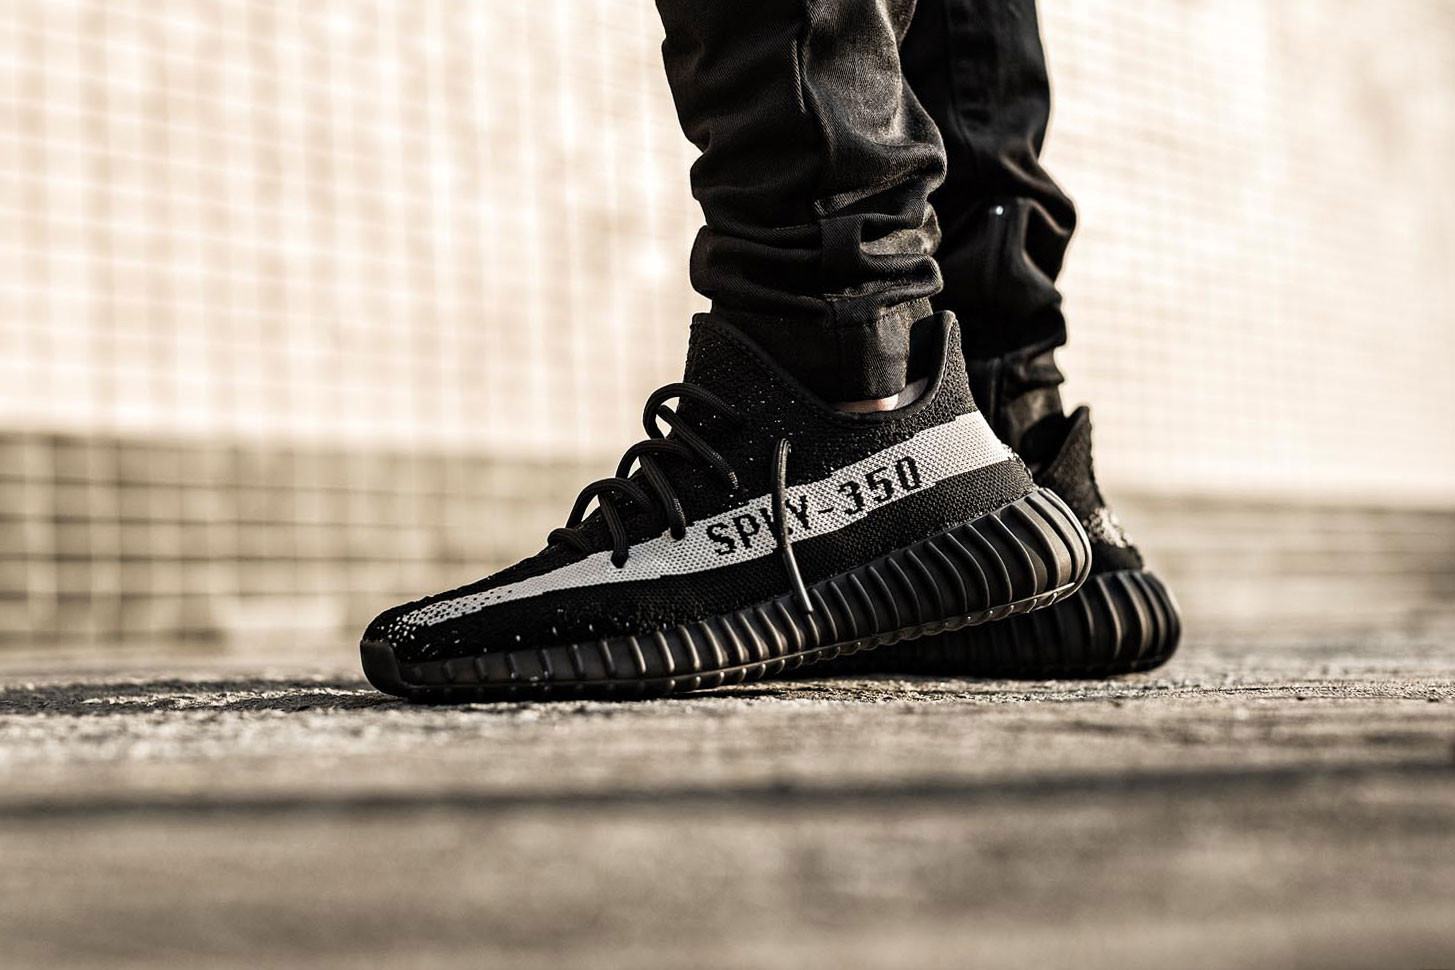 adidas-originals-yeezy-boost-350-v2-core-black-core-white-store-list-0